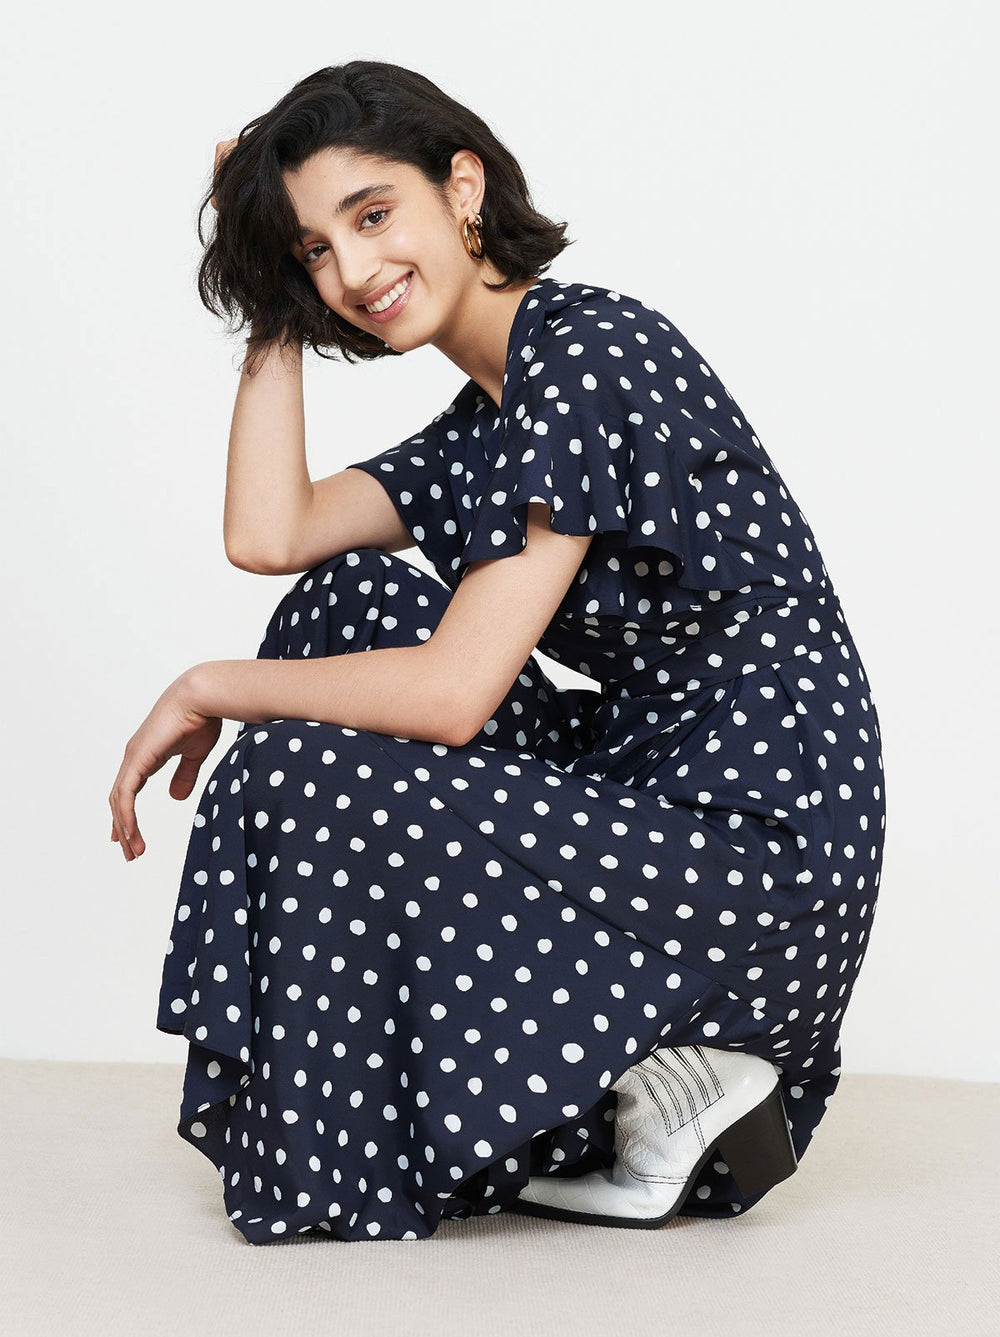 e92e06abb28 ... Eliana Navy Polka Dot Wrap Dress by KITRI Studio